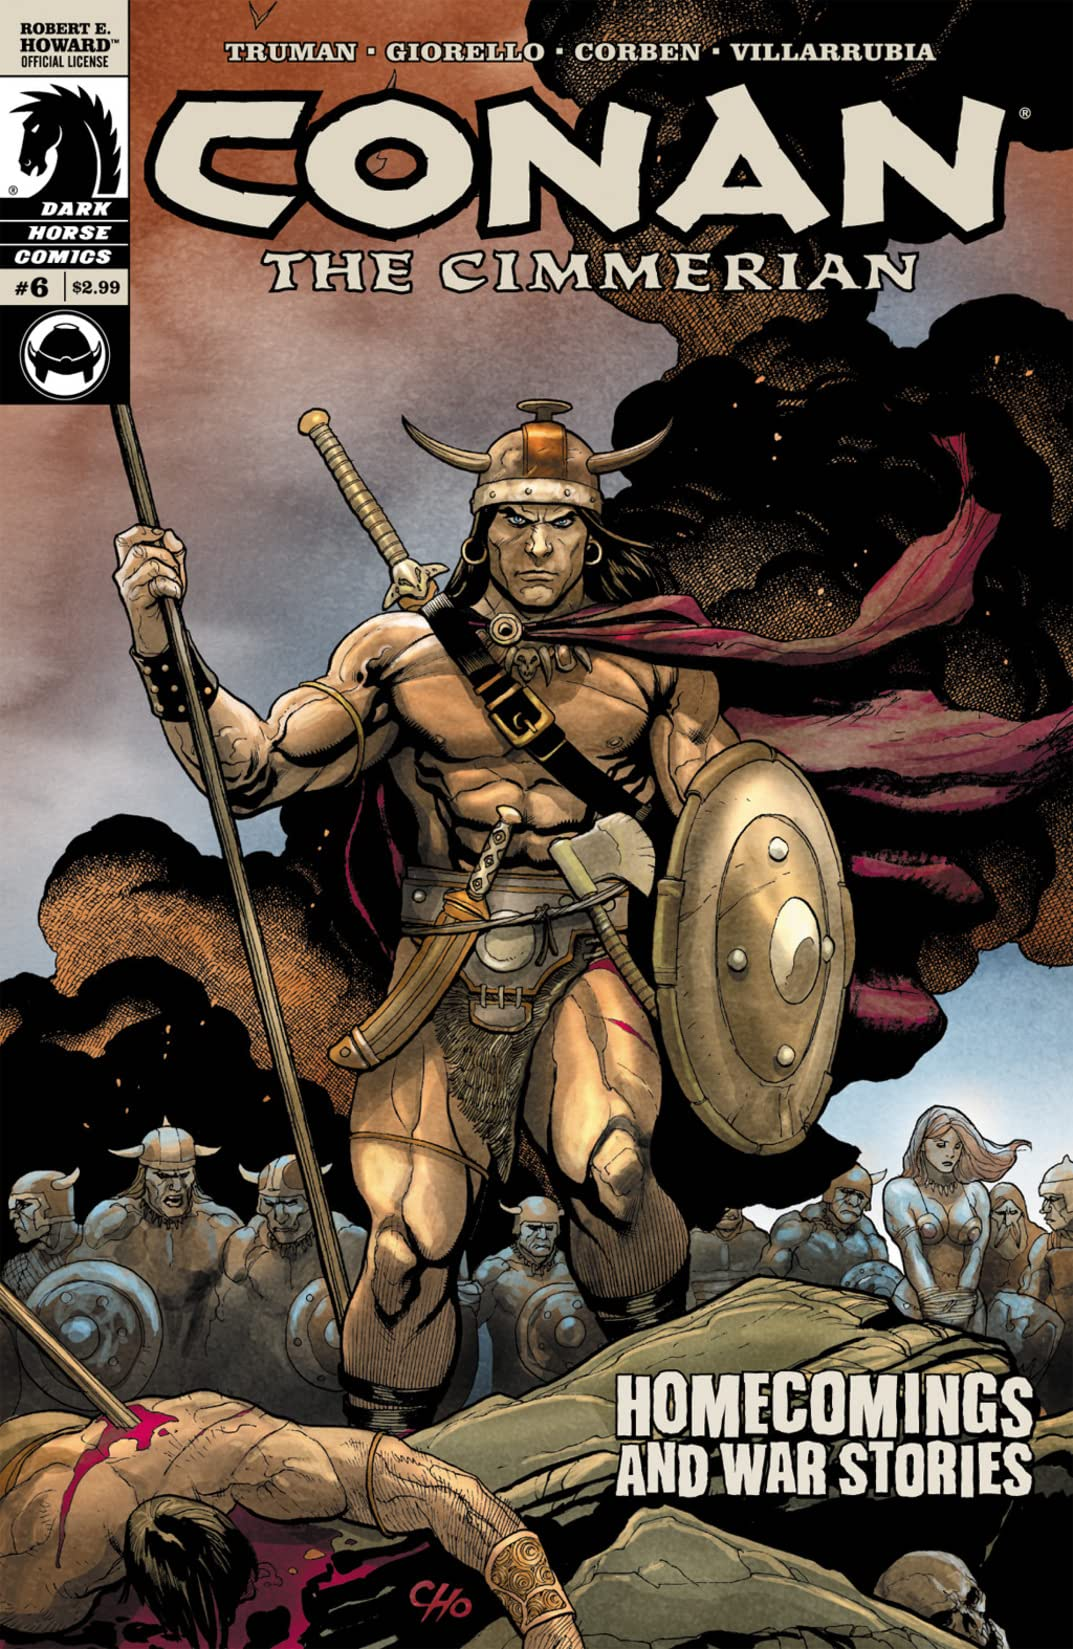 Conan the Cimmerian #6